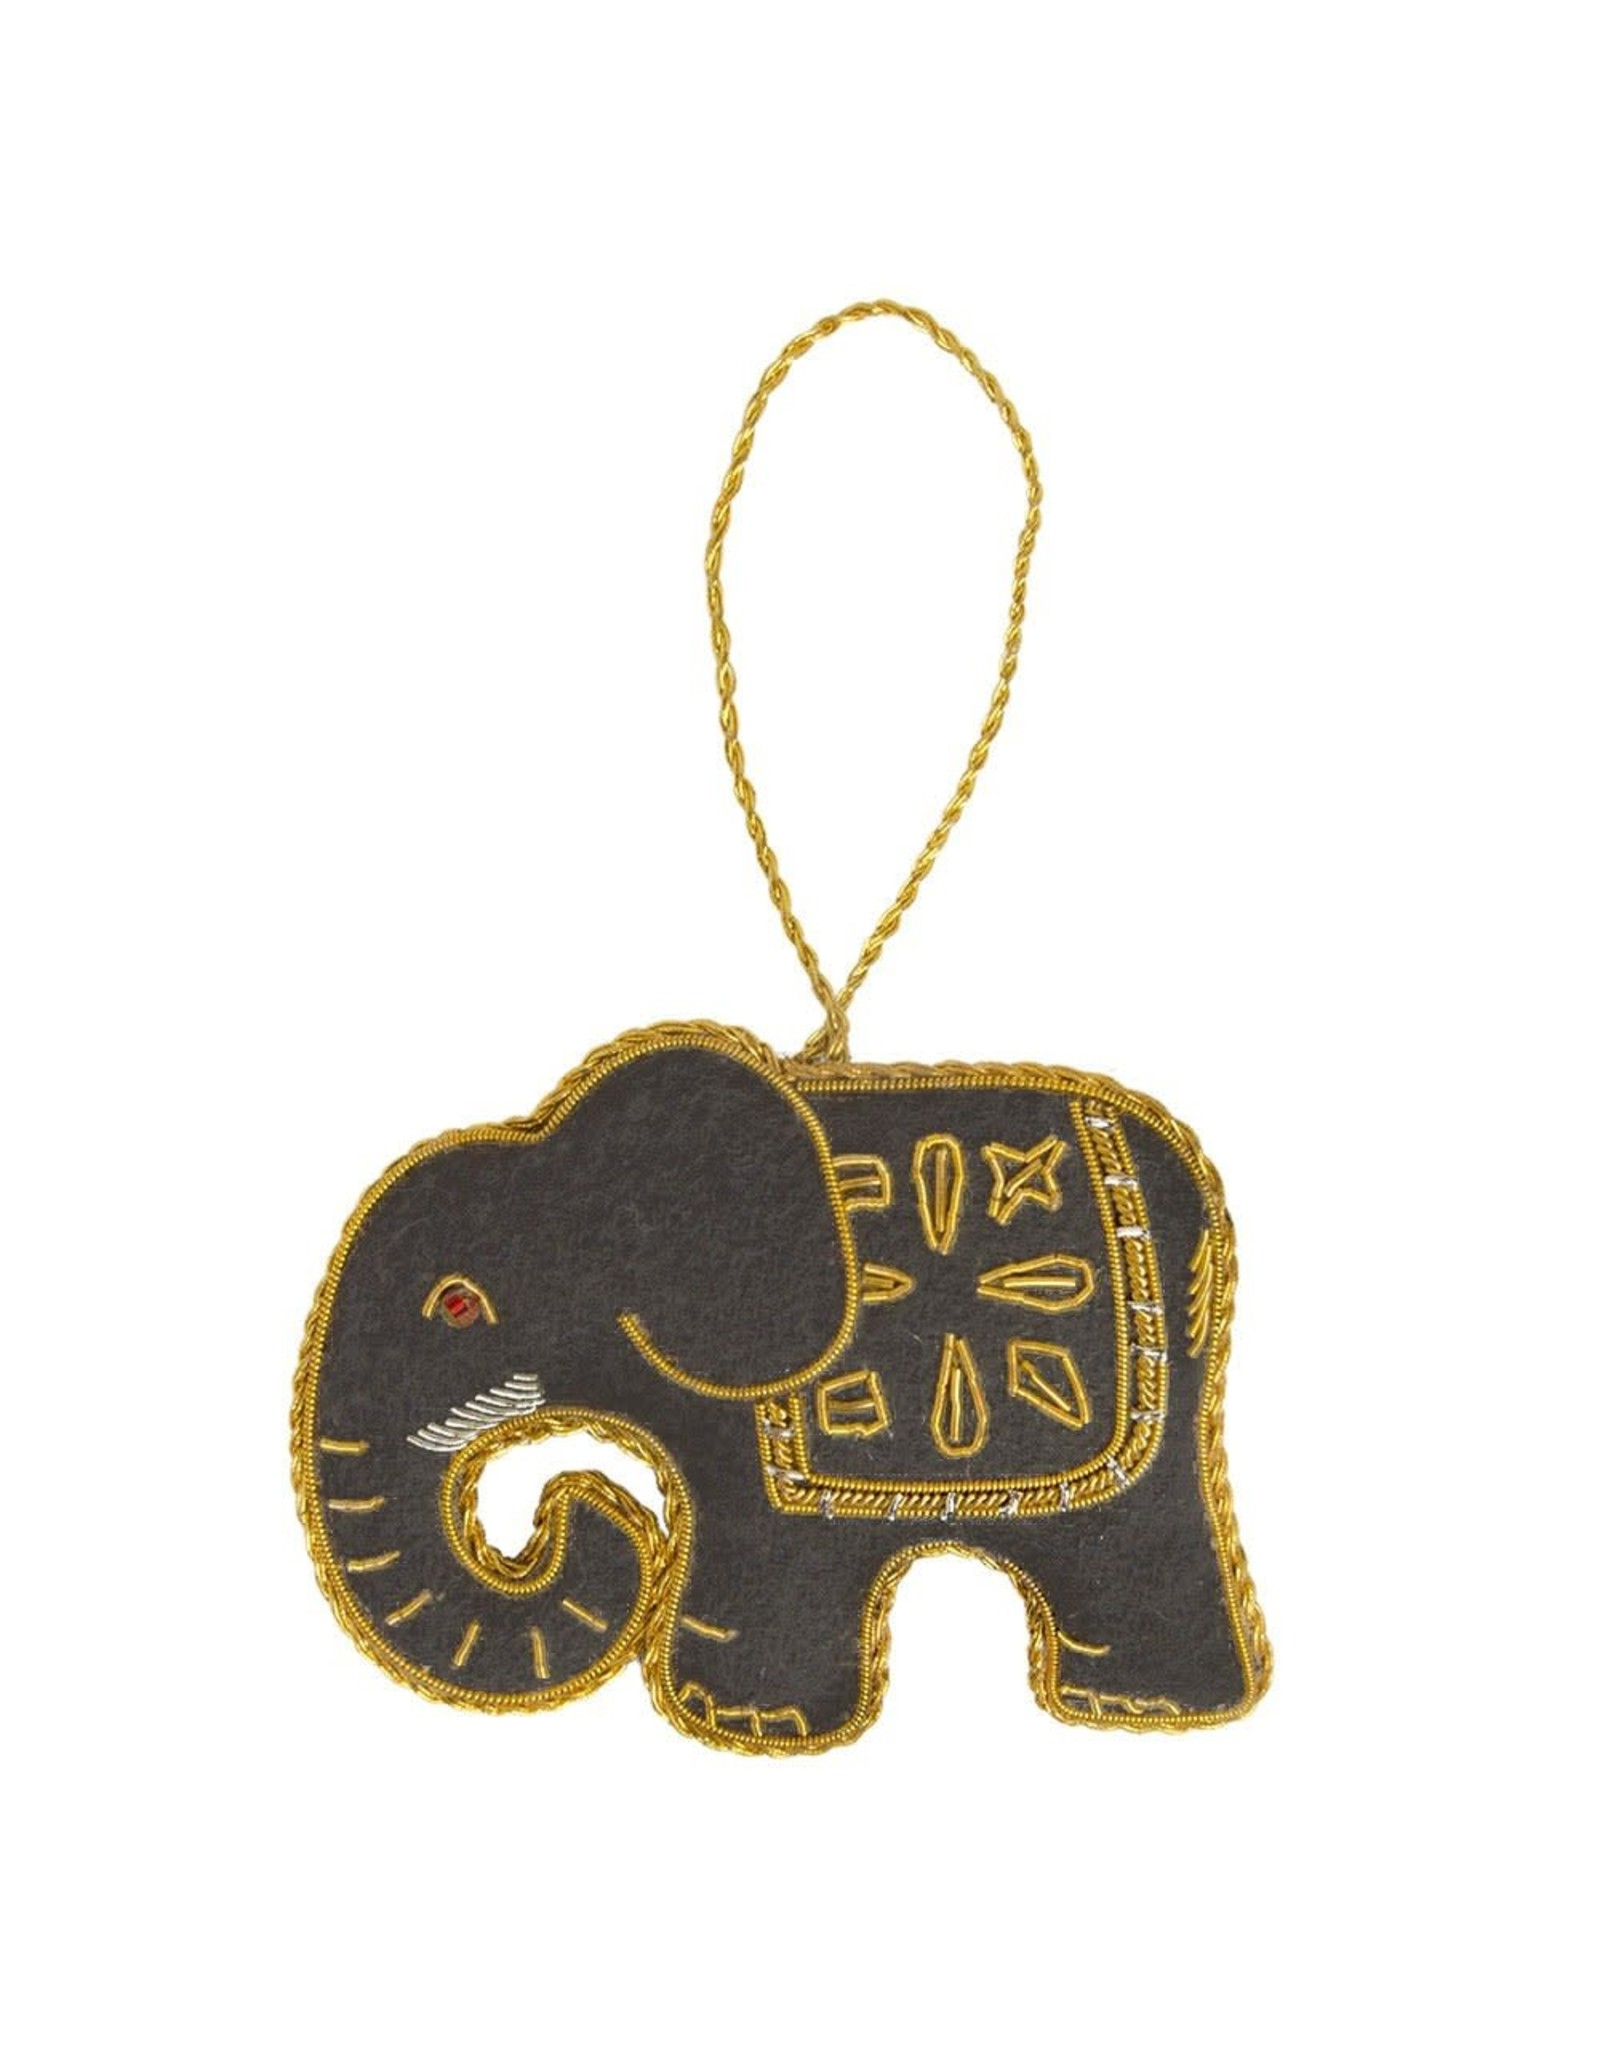 Matr Boomie Larissa Plush Elephant Ornament